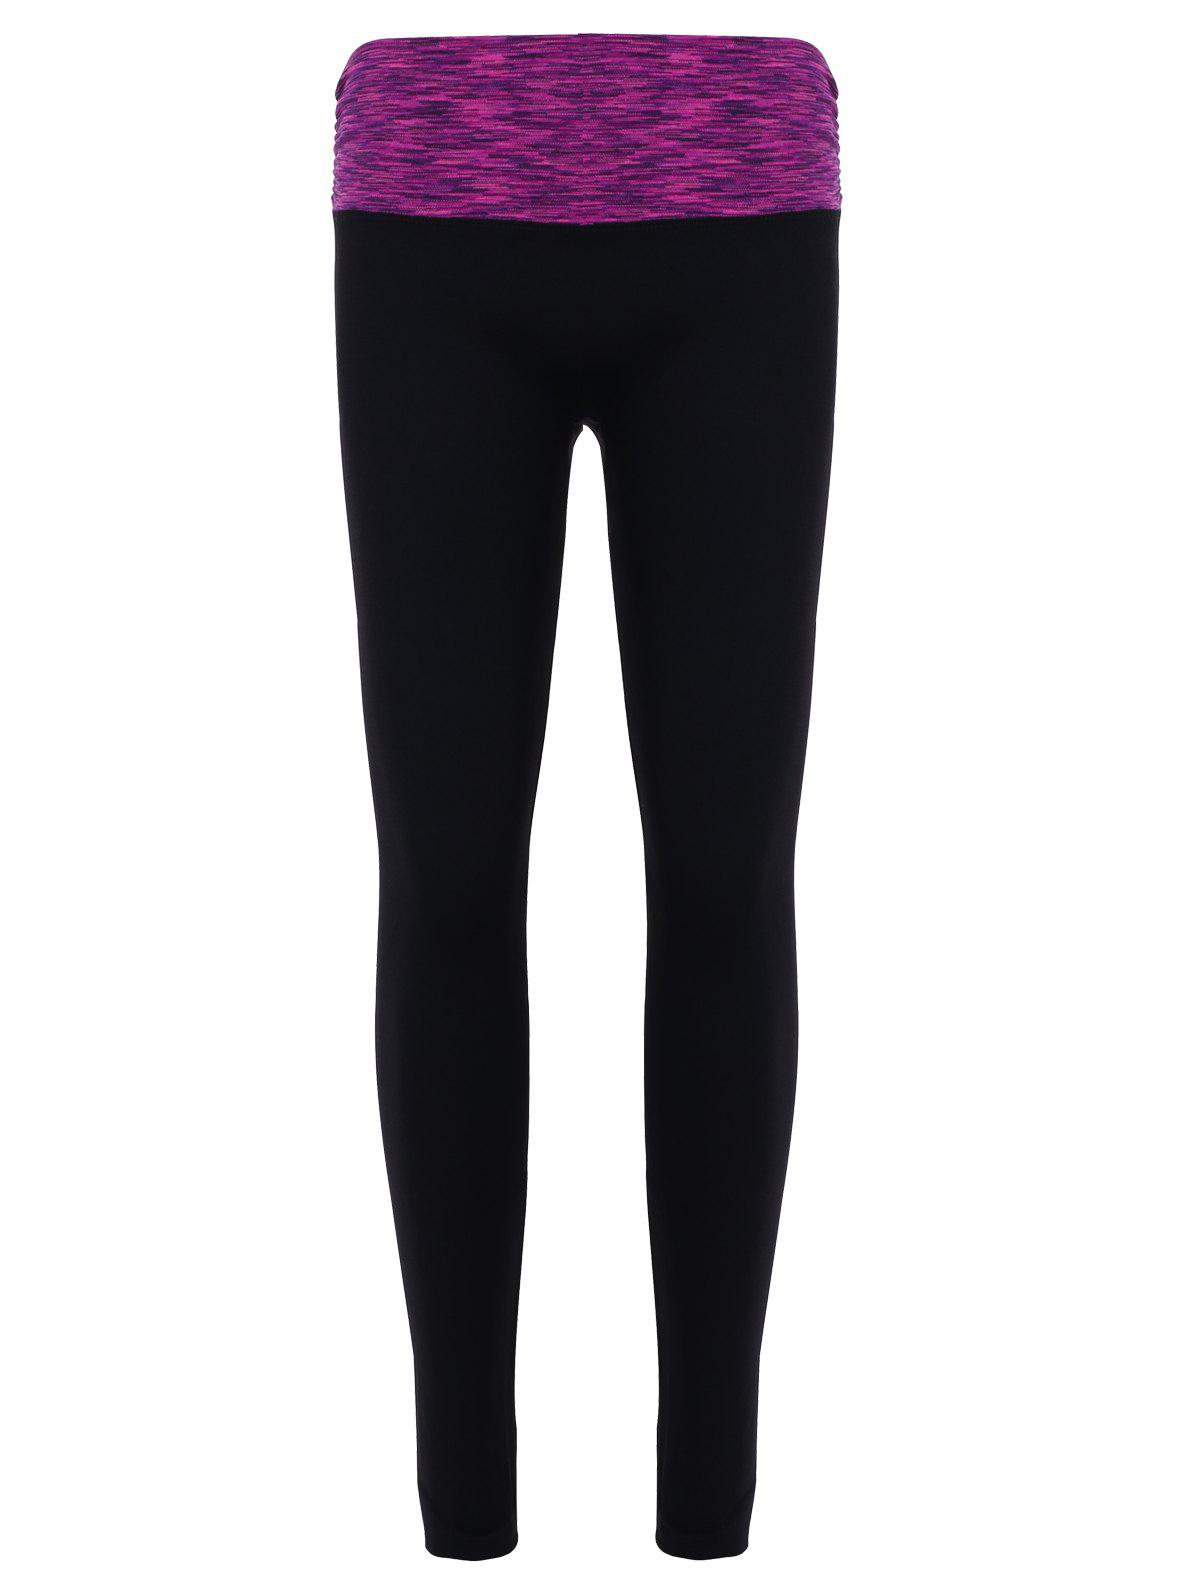 Stylish Women's High Waisted Stretchy Space Dyed Slimming Gym Leggings